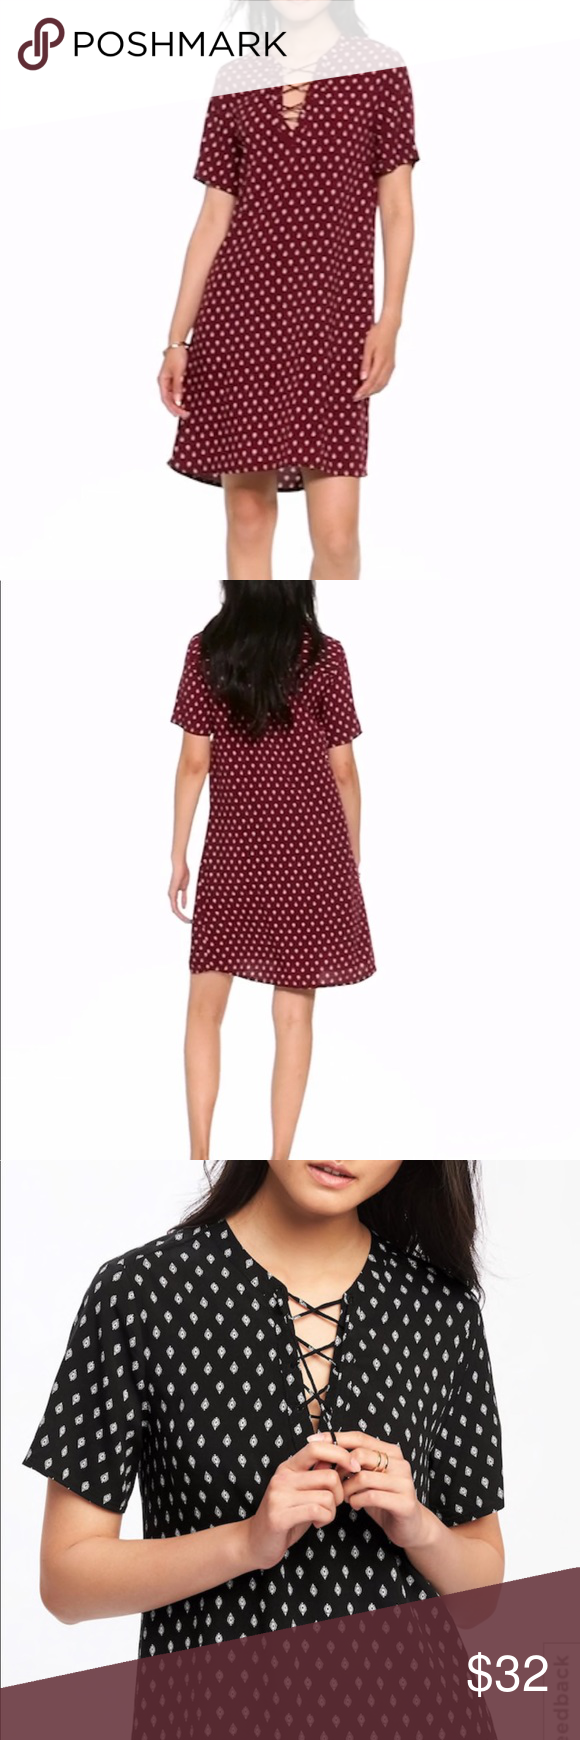 NWT old navy lace up dress